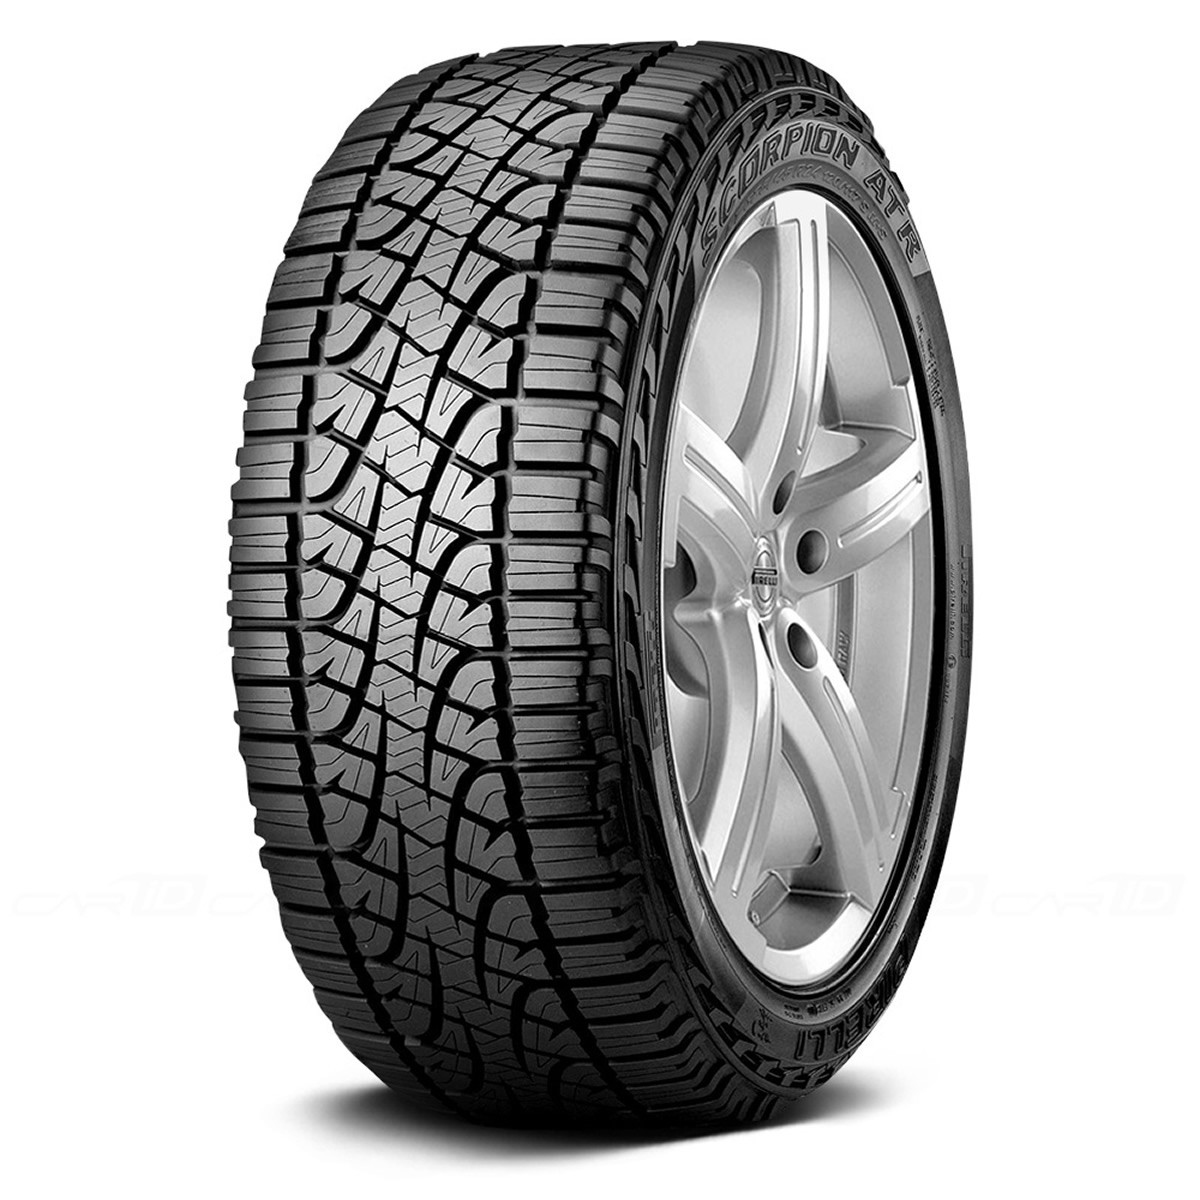 Pirelli Scorpion All Terrain Plus 265/65 R 17 Tubeless 112 T Car Tyre